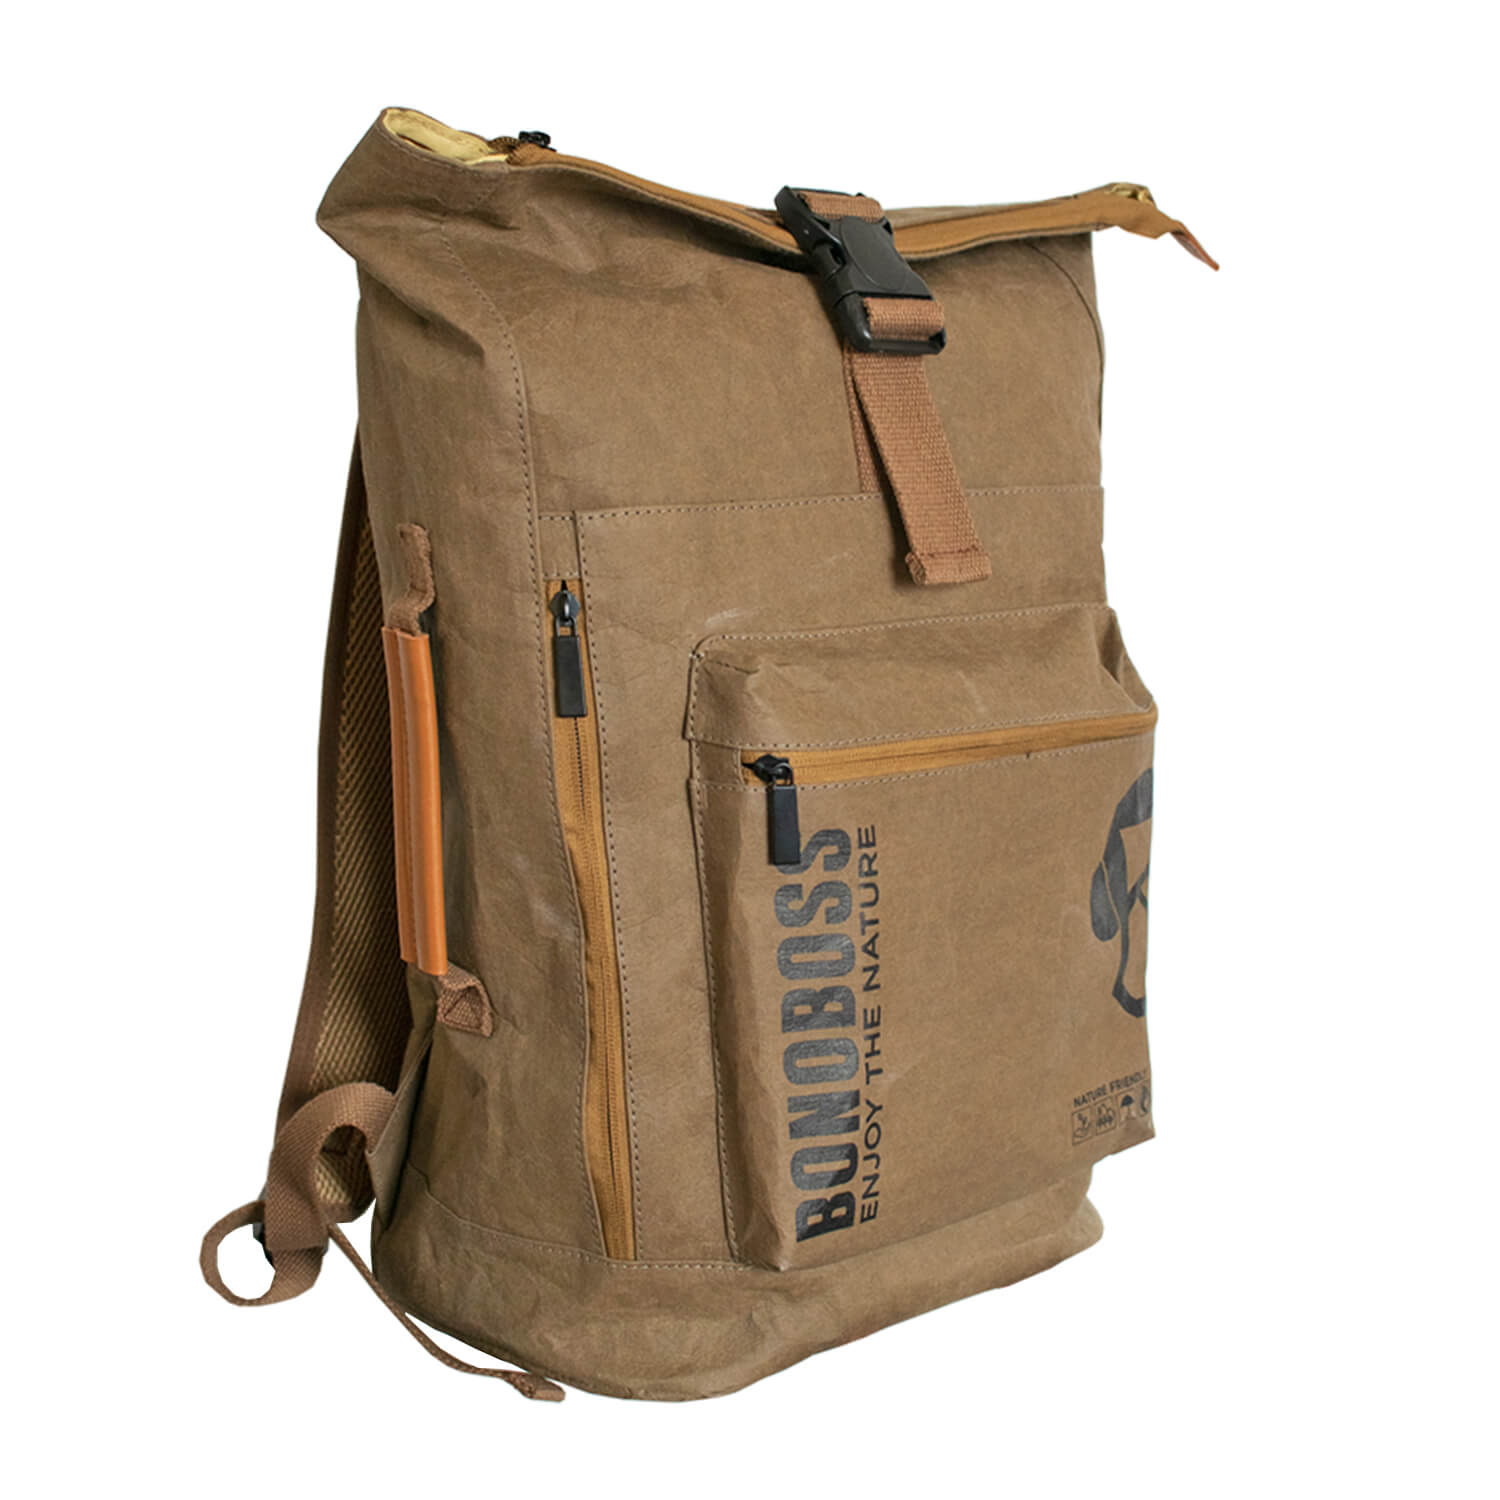 Mochila Papel Sustentable Mountain Café